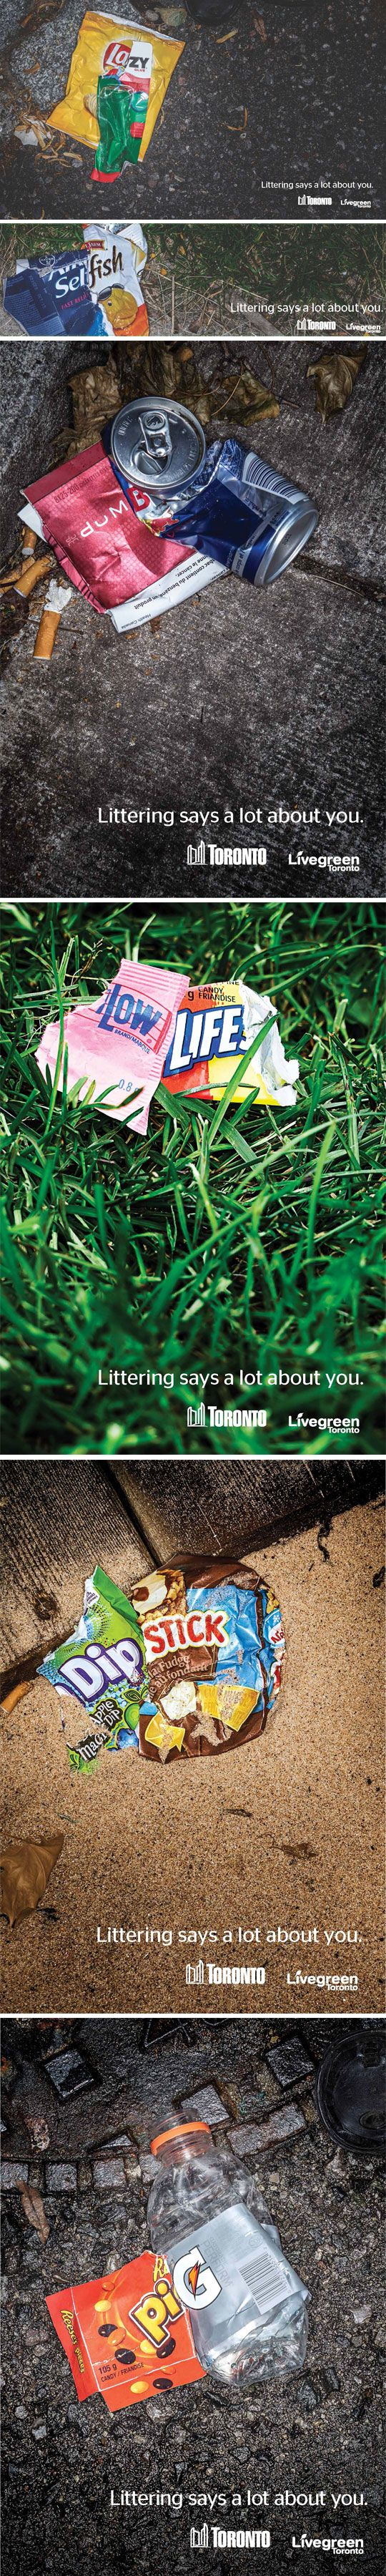 Littering Says A Lot About You (this is a great idea) Toronto campaign to stop littering